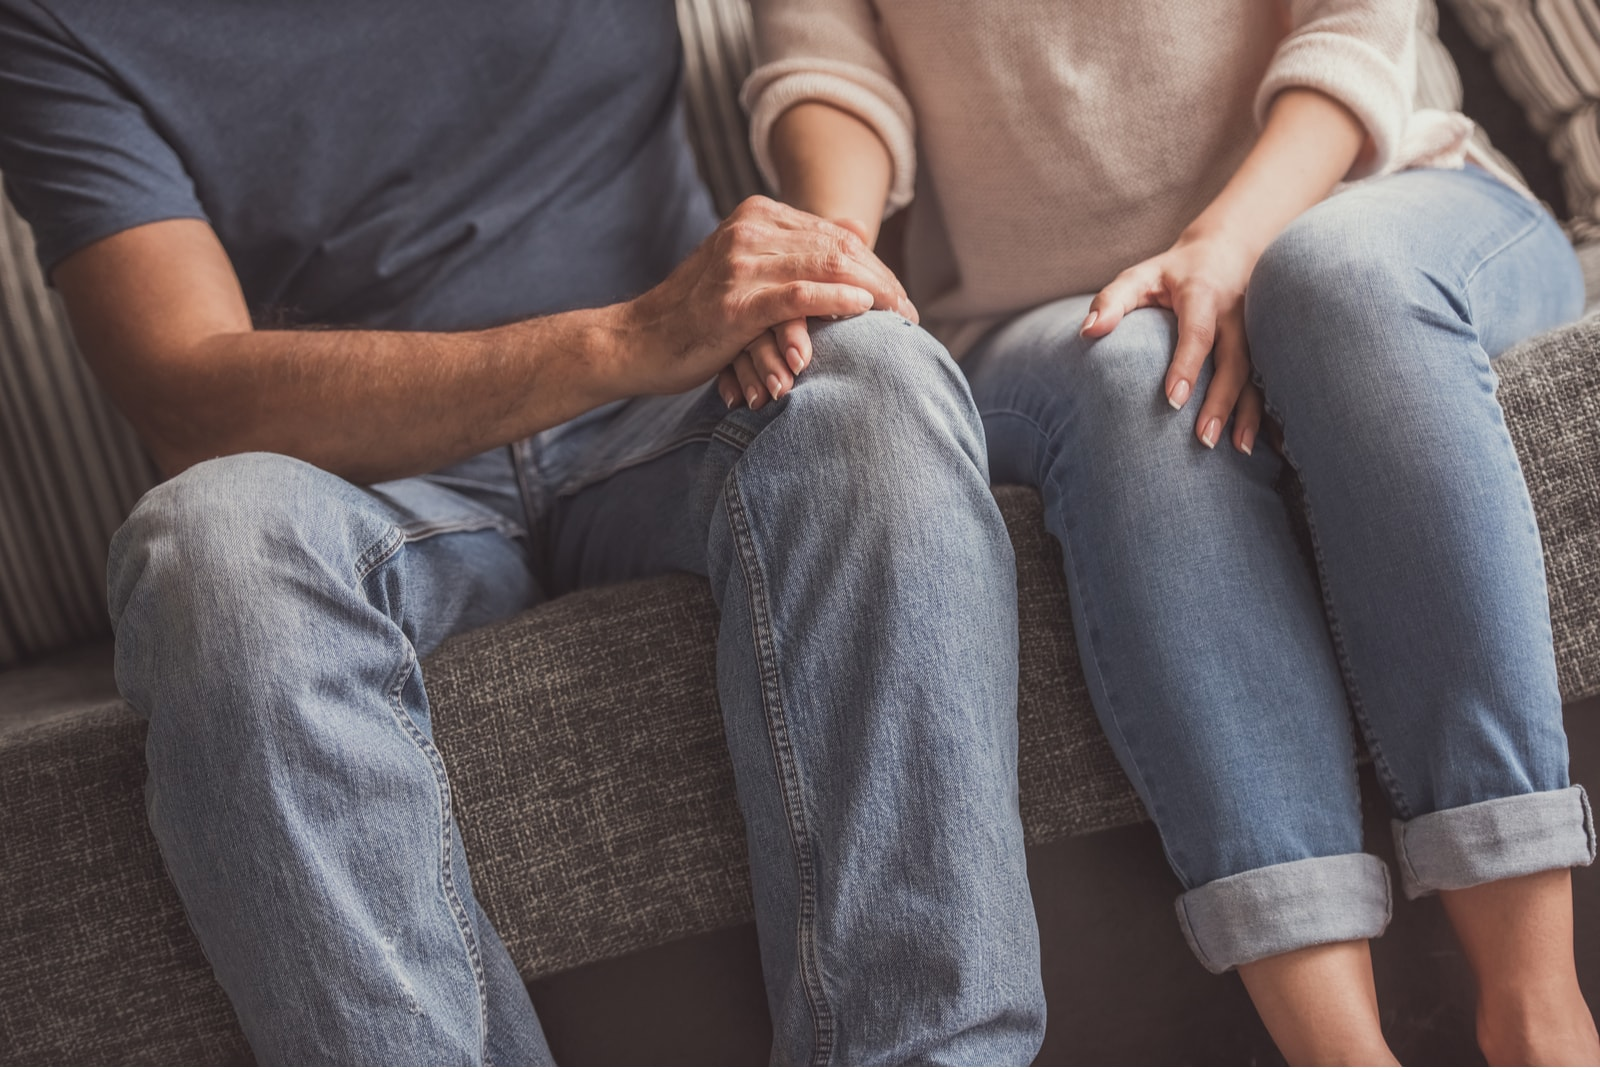 couple holding hands while resting on couch at home